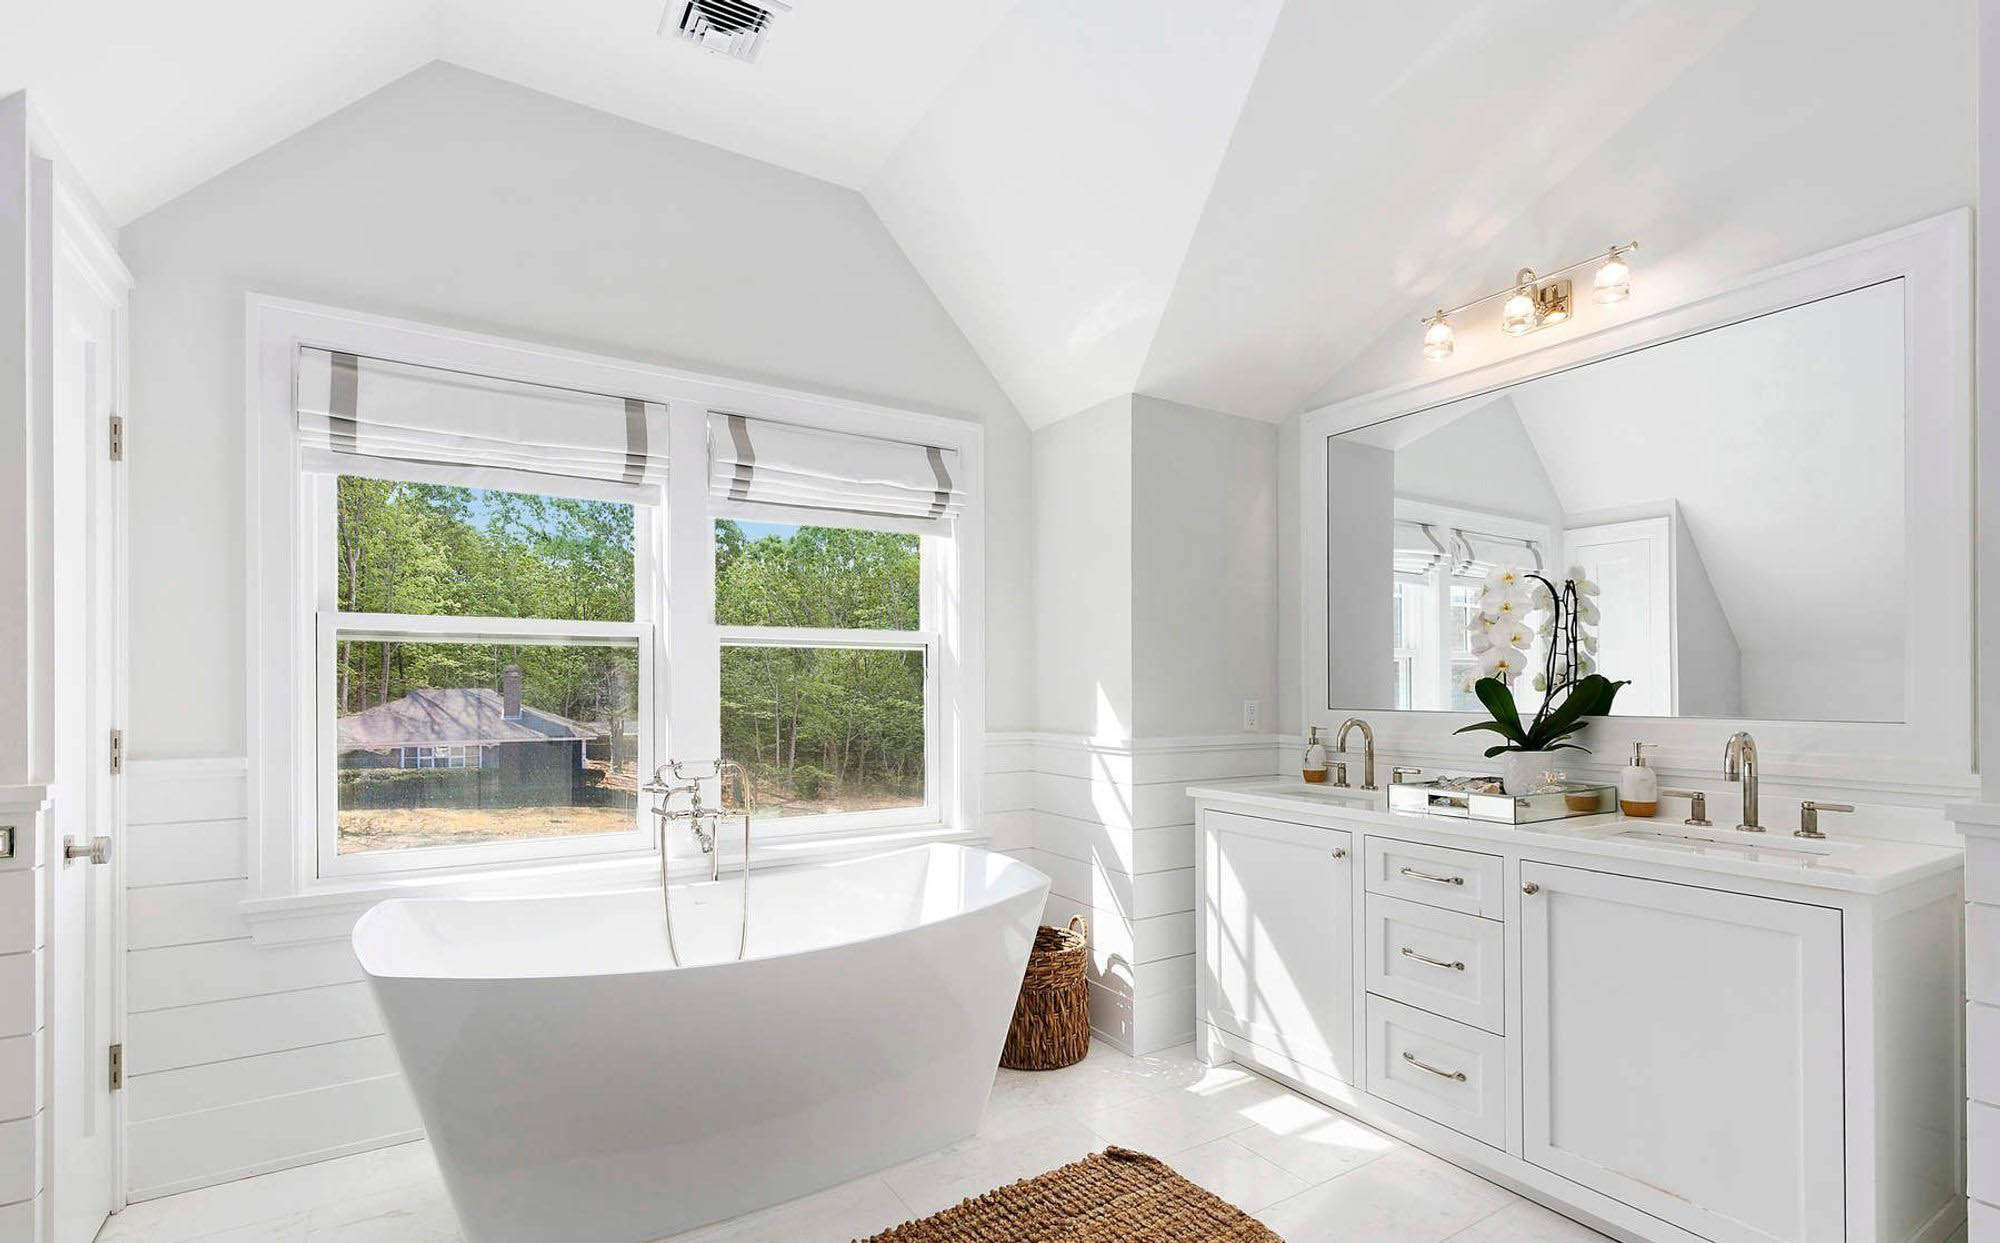 Another beautiful master bathroom design with shiplap wainscoting wall paneling. Shaker style cabinets with a freestanding soaking tub.